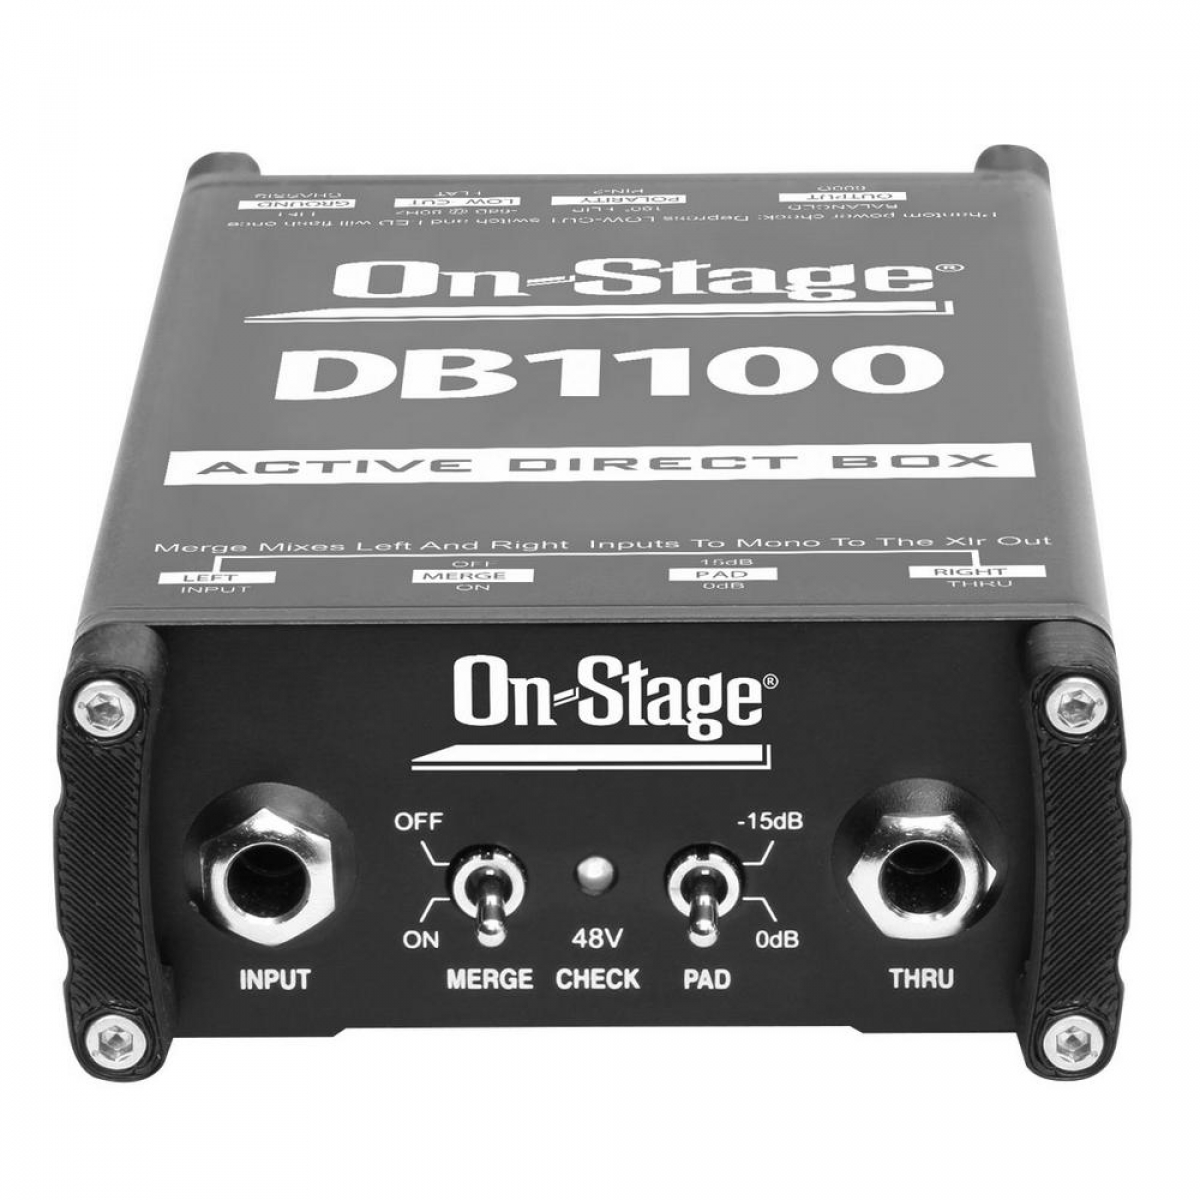 On-Stage DB1100 Active DI Box with Stereo-to-Mono Summing